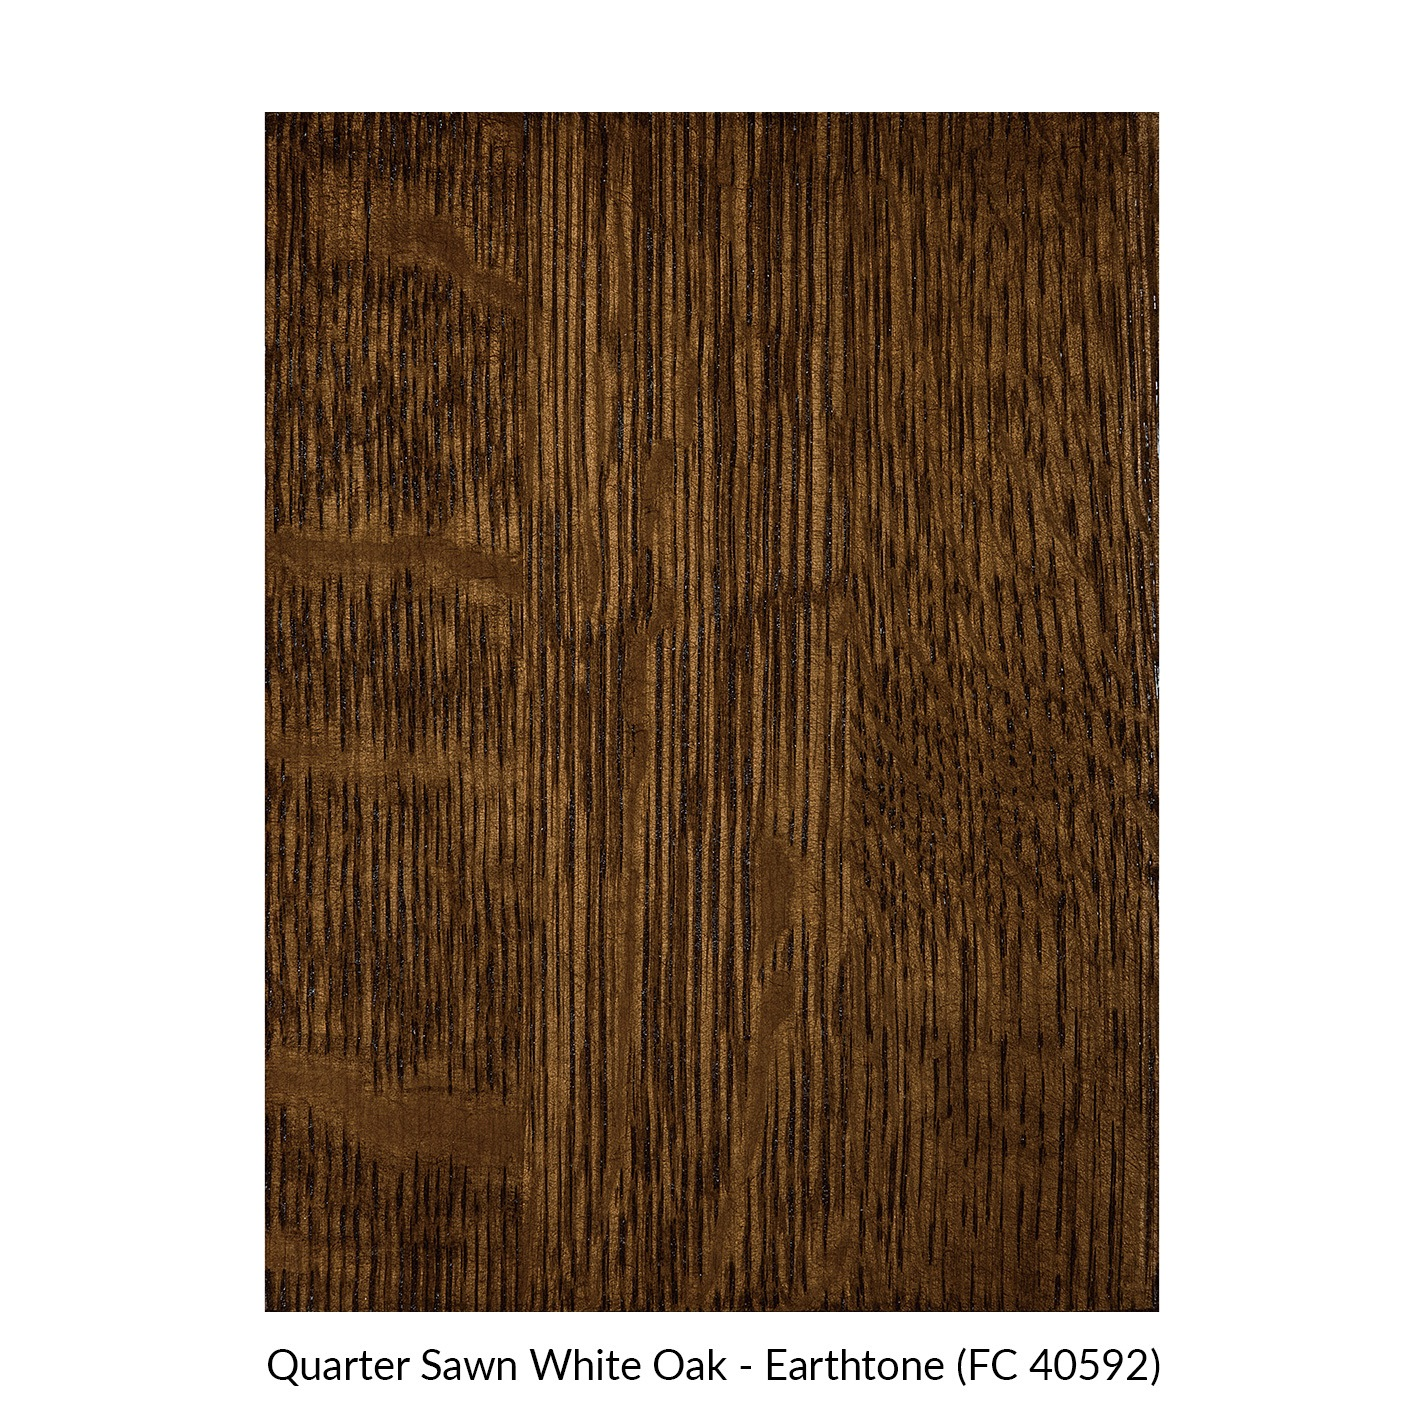 spectrum-quarter-sawn-white-oak-earthtone-fc-40592.jpg